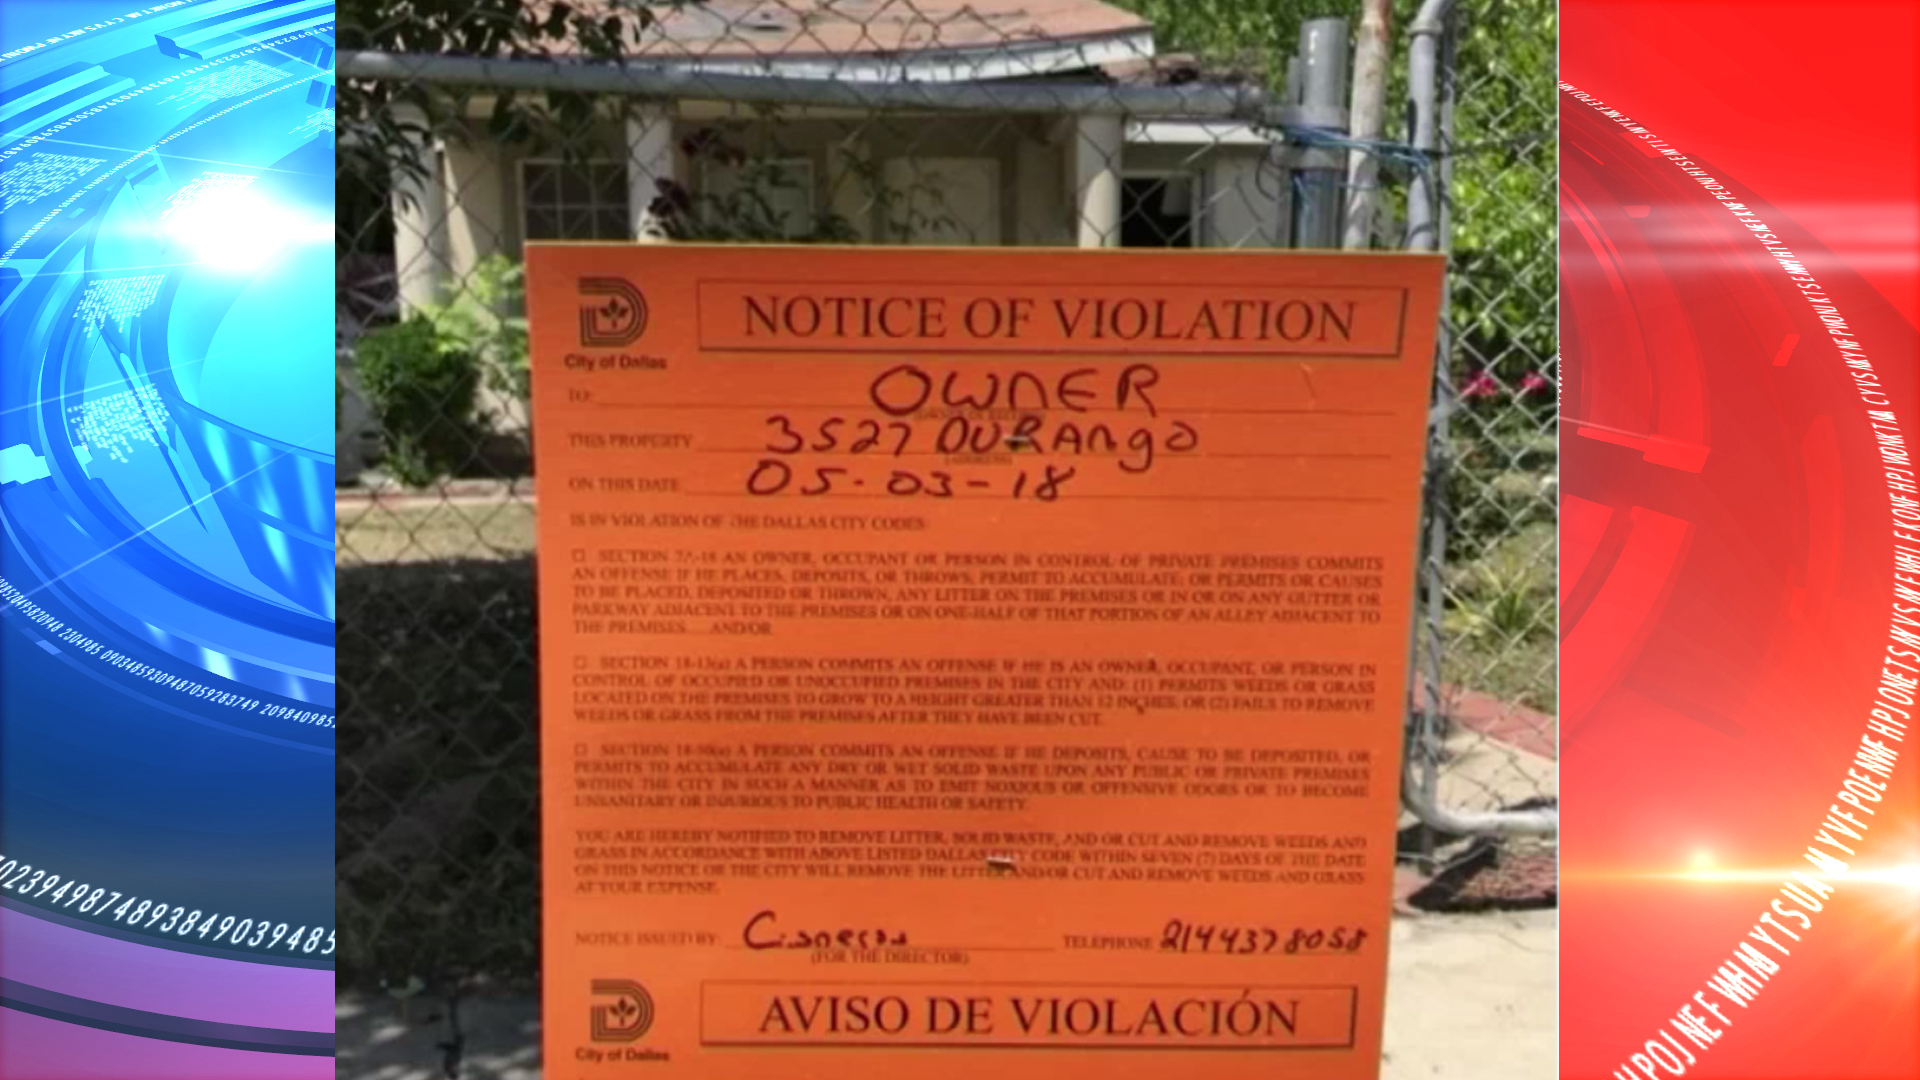 Dallas Home Where a Natural Gas Explosion Injured a Resident has Been Slapped with Code Violation